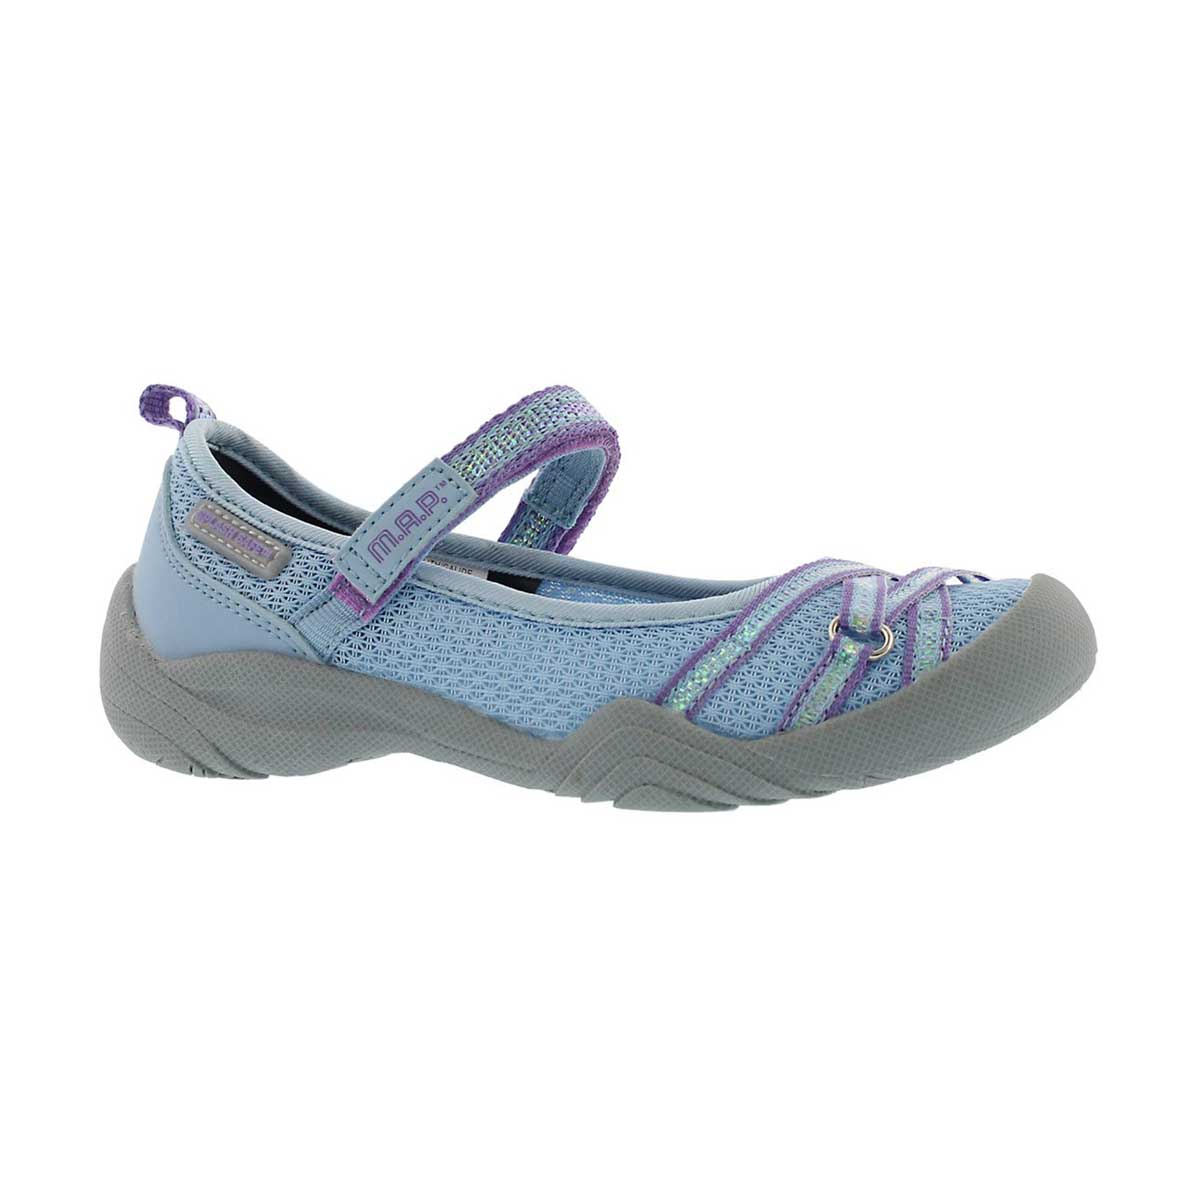 Girls' LILITH perwinkle/purple Mary Janes